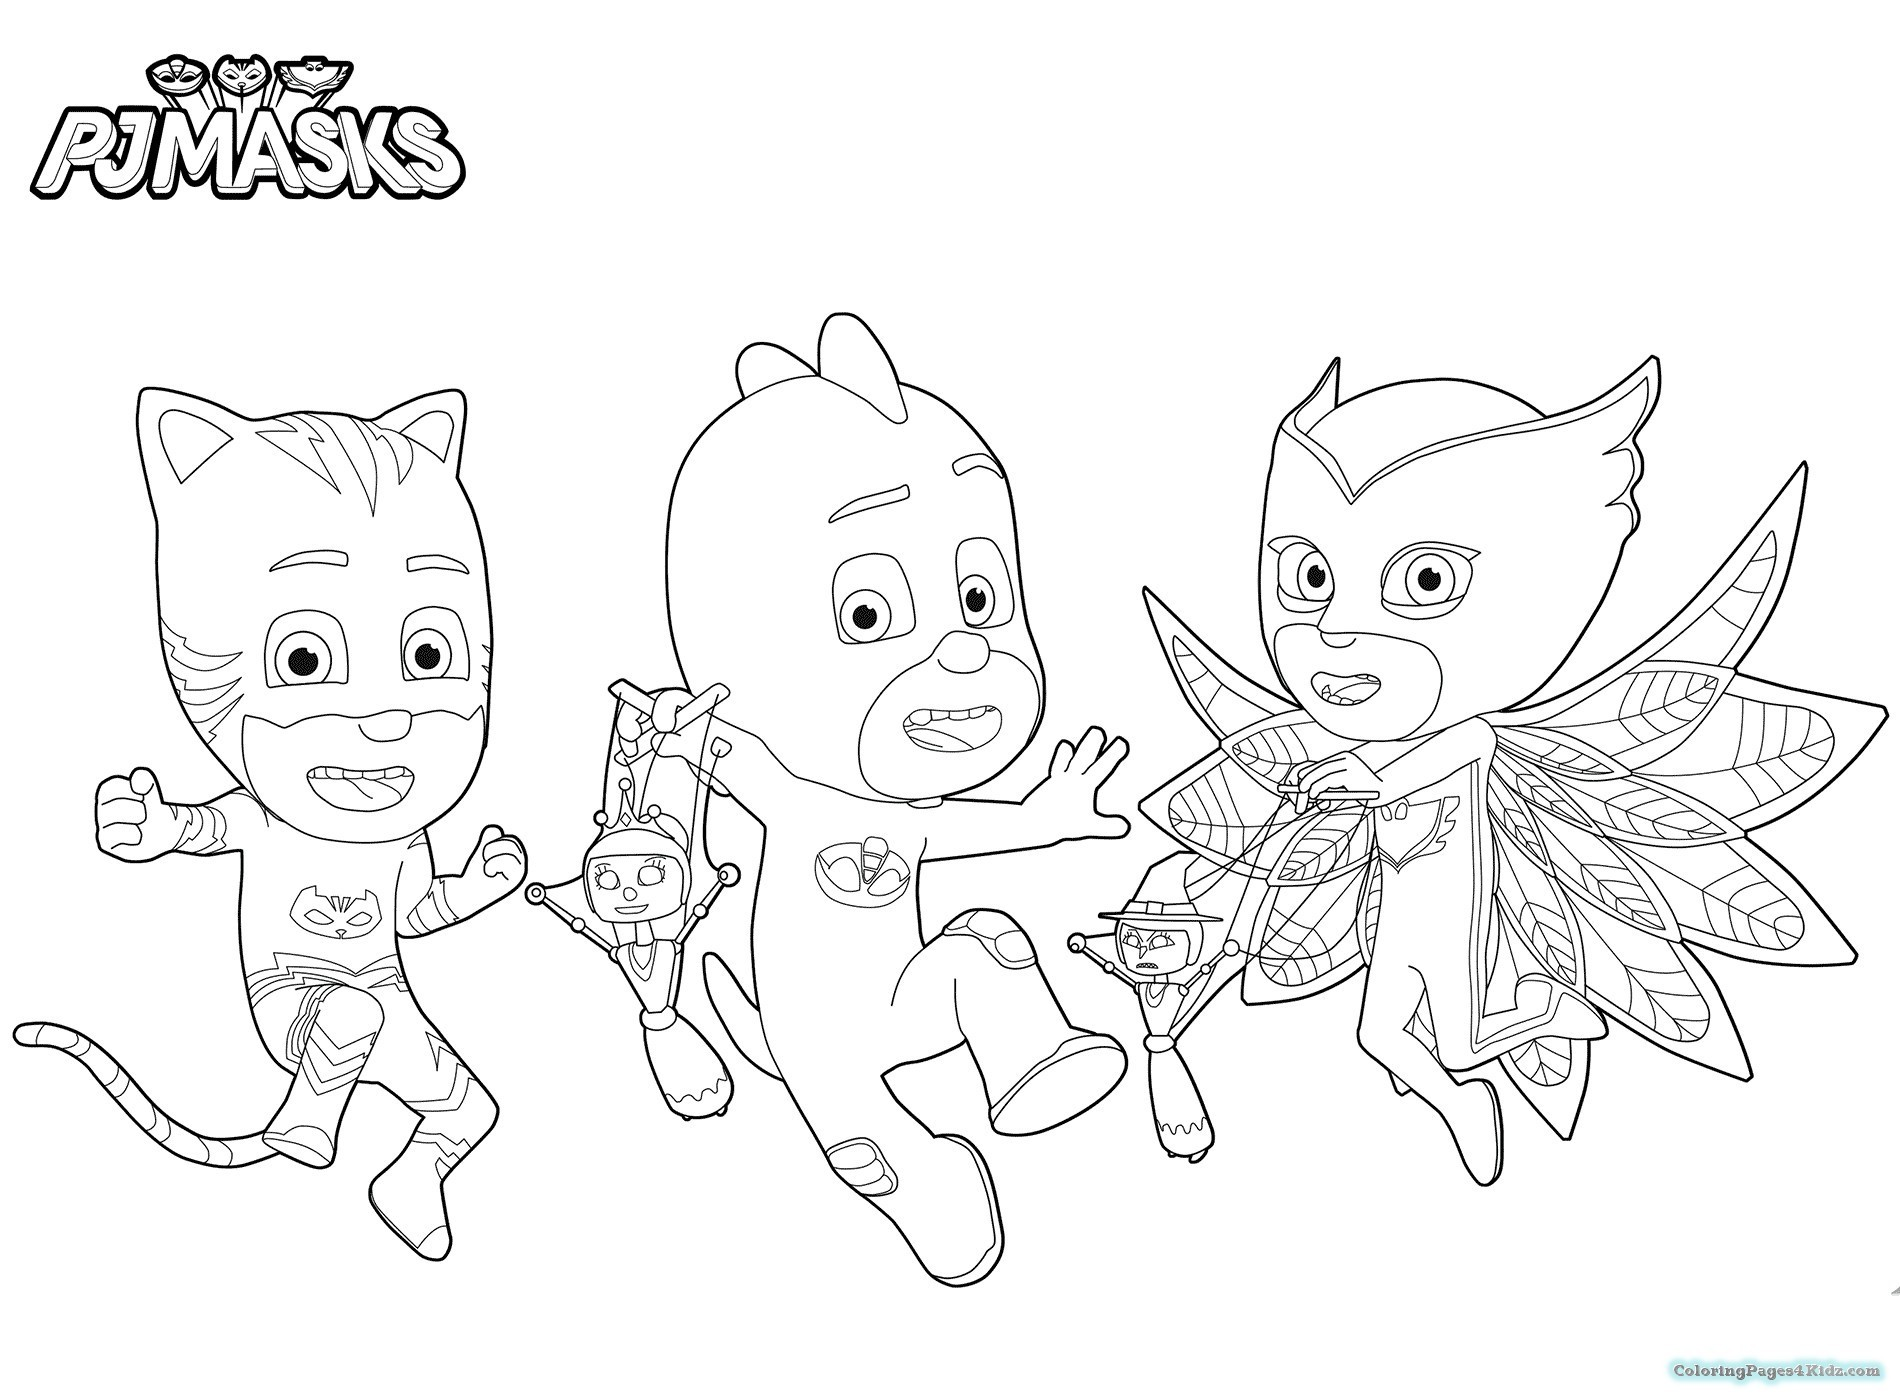 Pj Max Coloring Pages At Getdrawings Com Free For Personal Use Pj